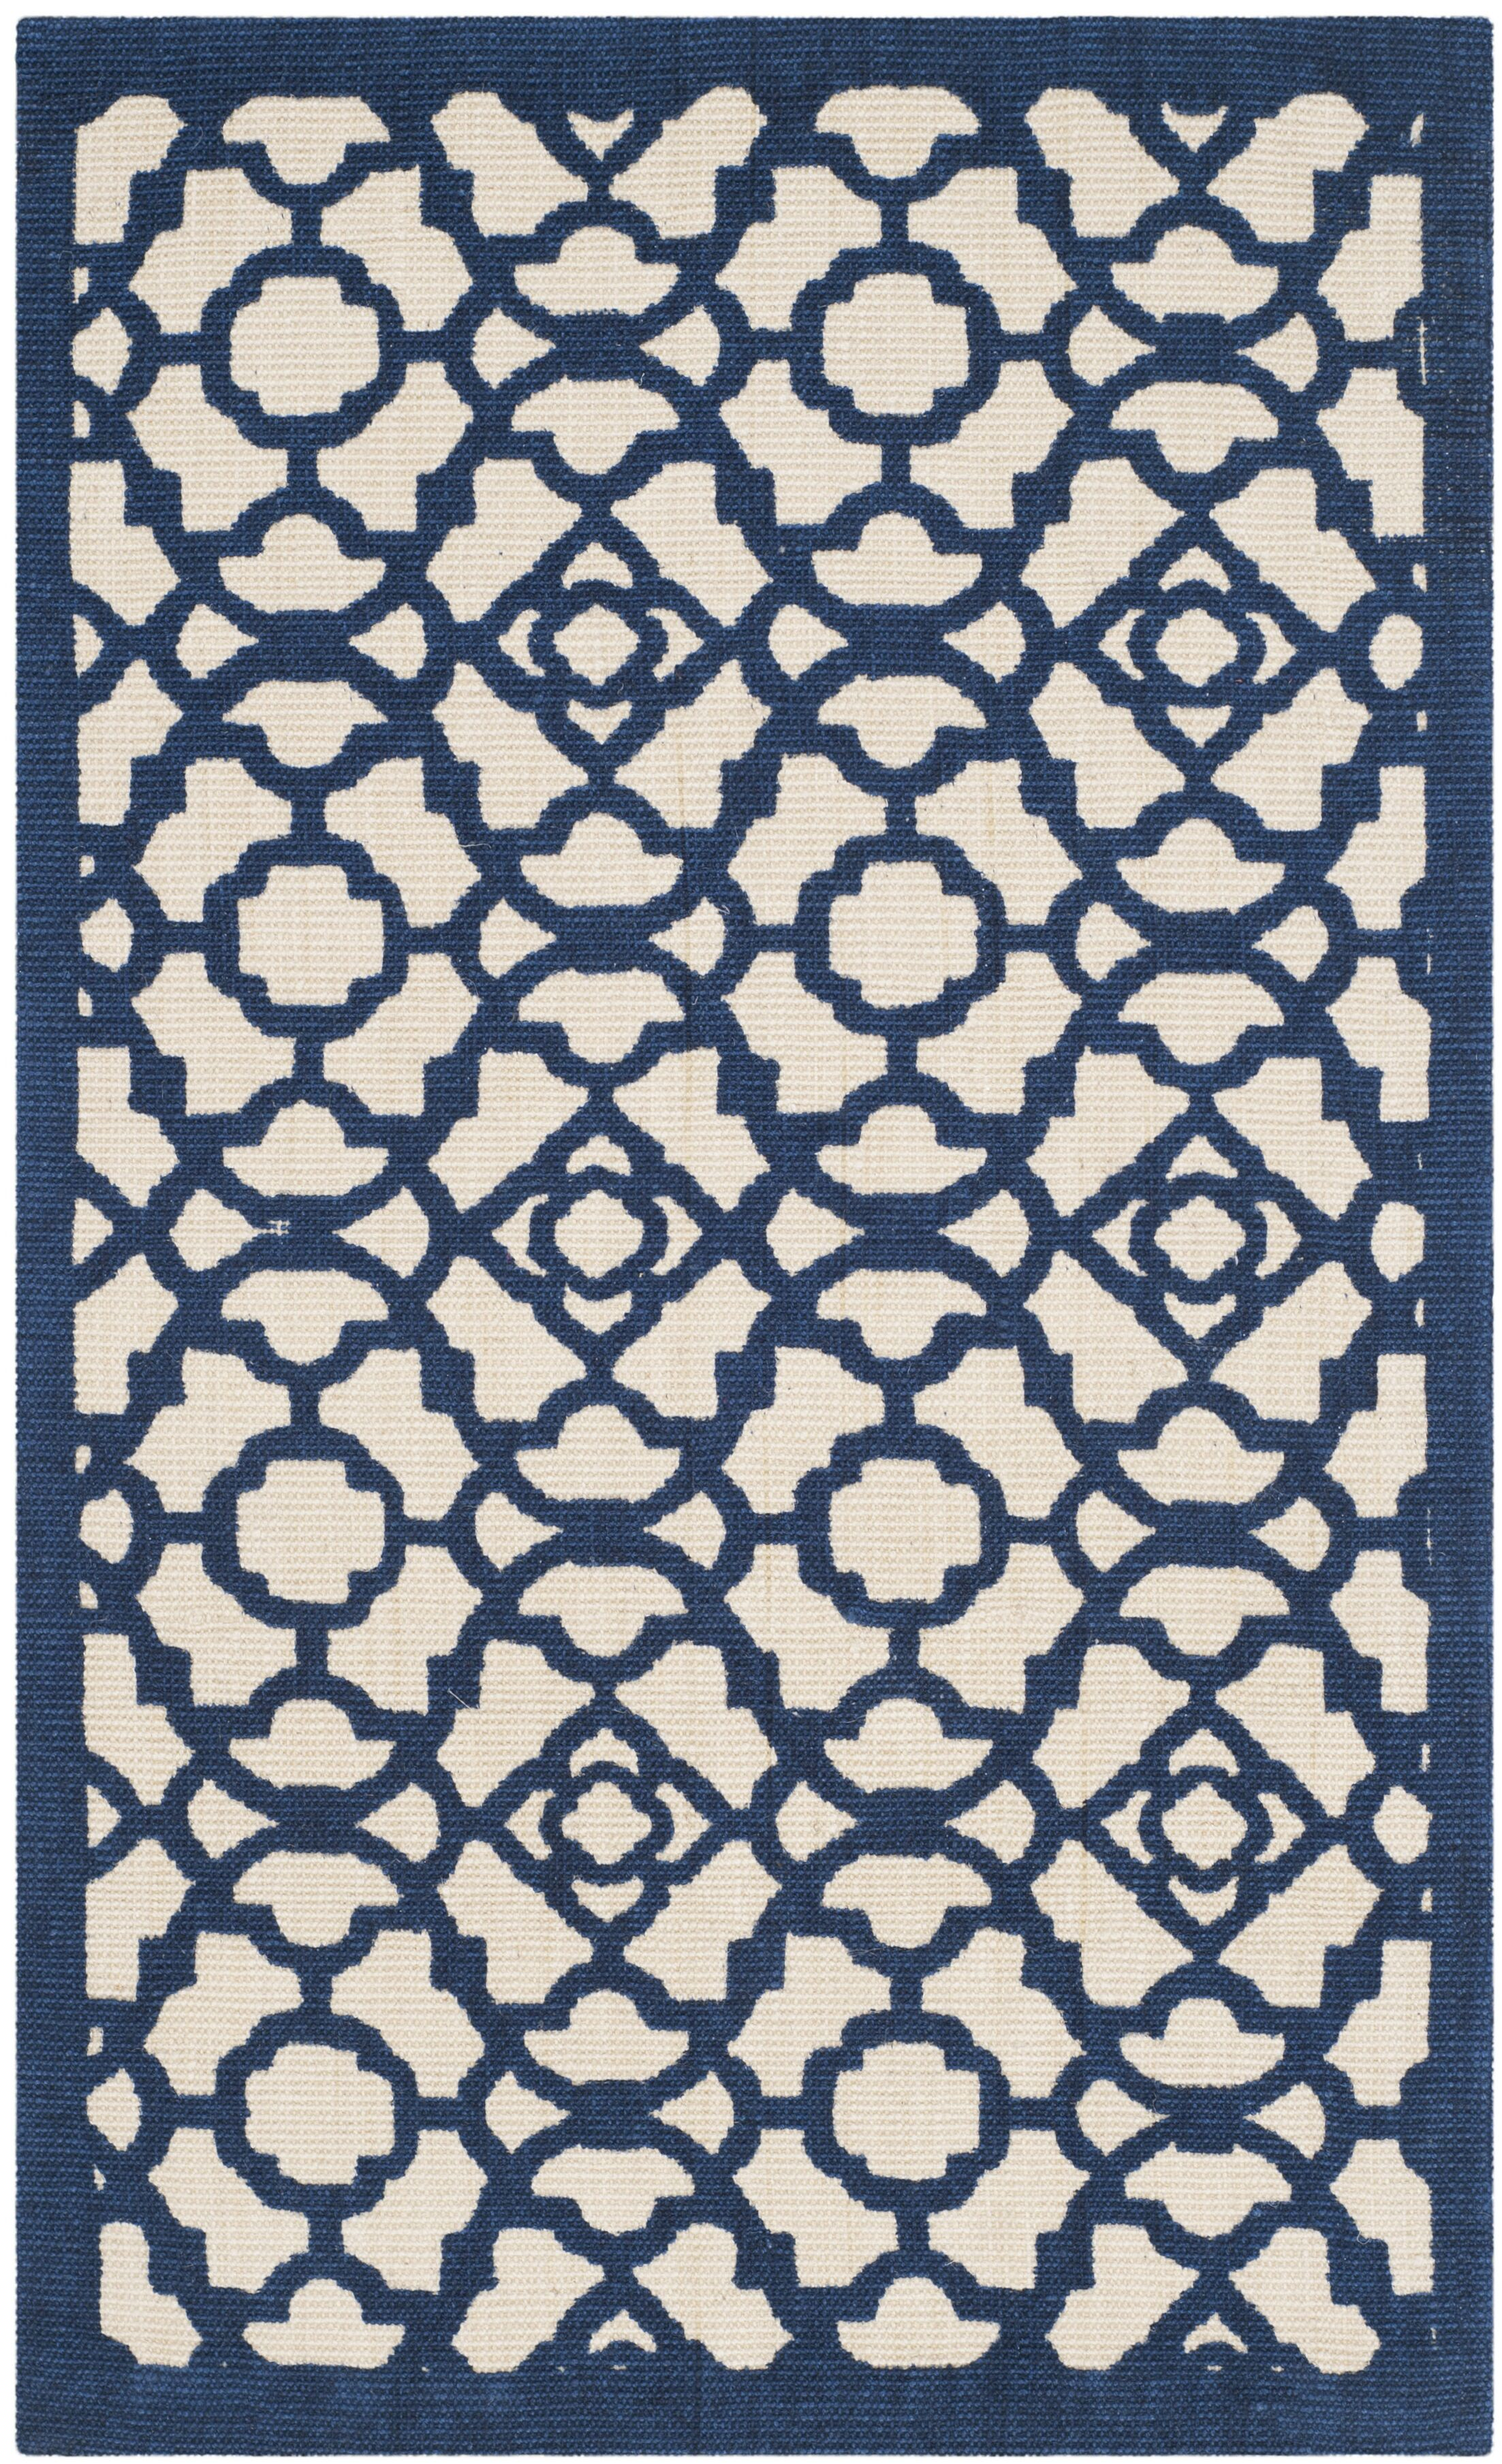 Quentin Road Ivory & Navy Area Rug Rug Size: 8' x 10'